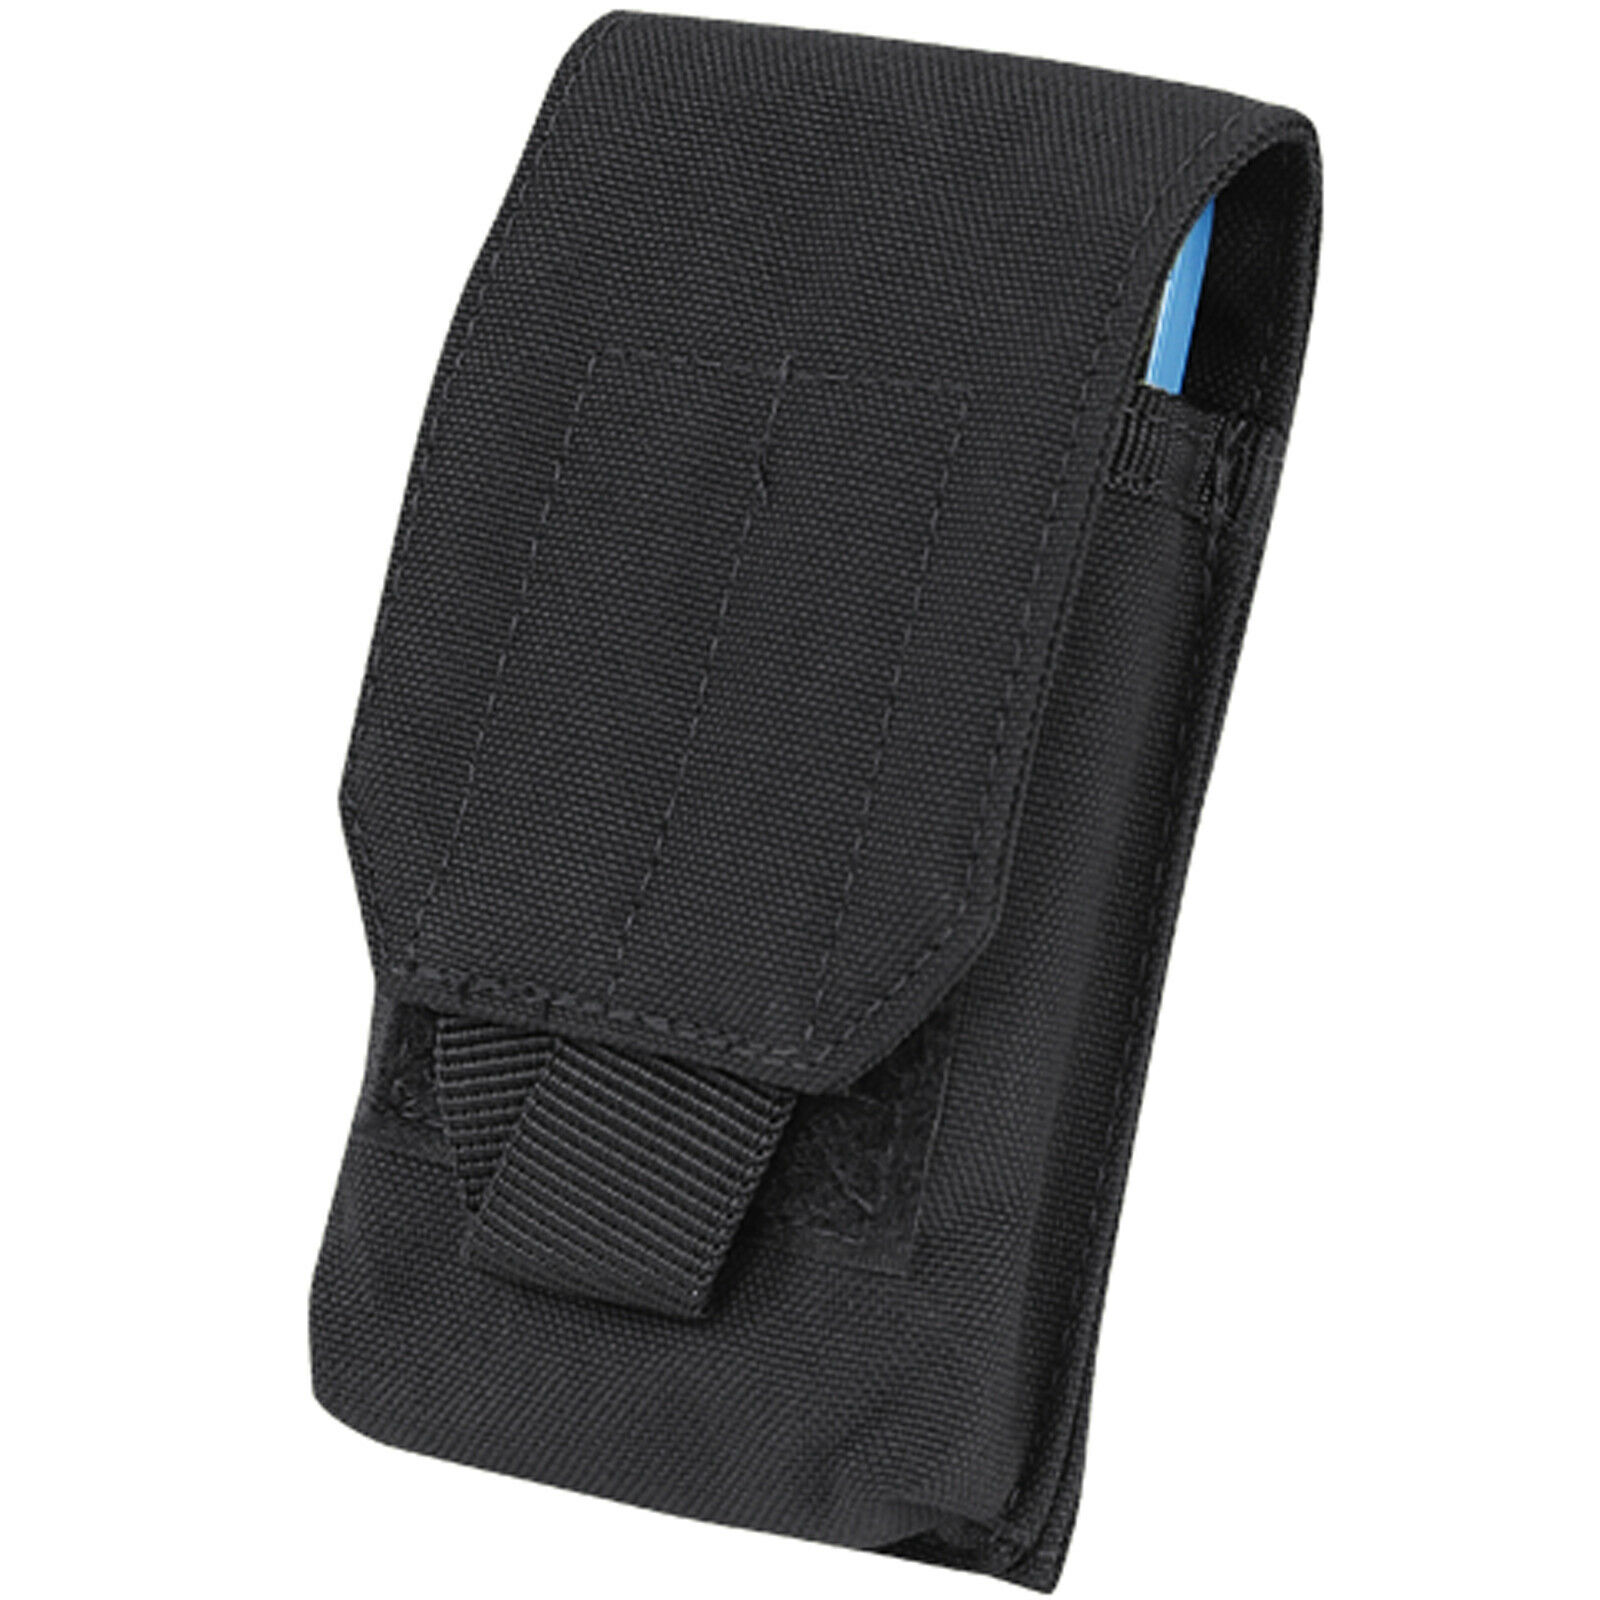 BLACK Tactical Tech Sheath Pouch Bag Modular Belt Mount Cell Phone Battery Case